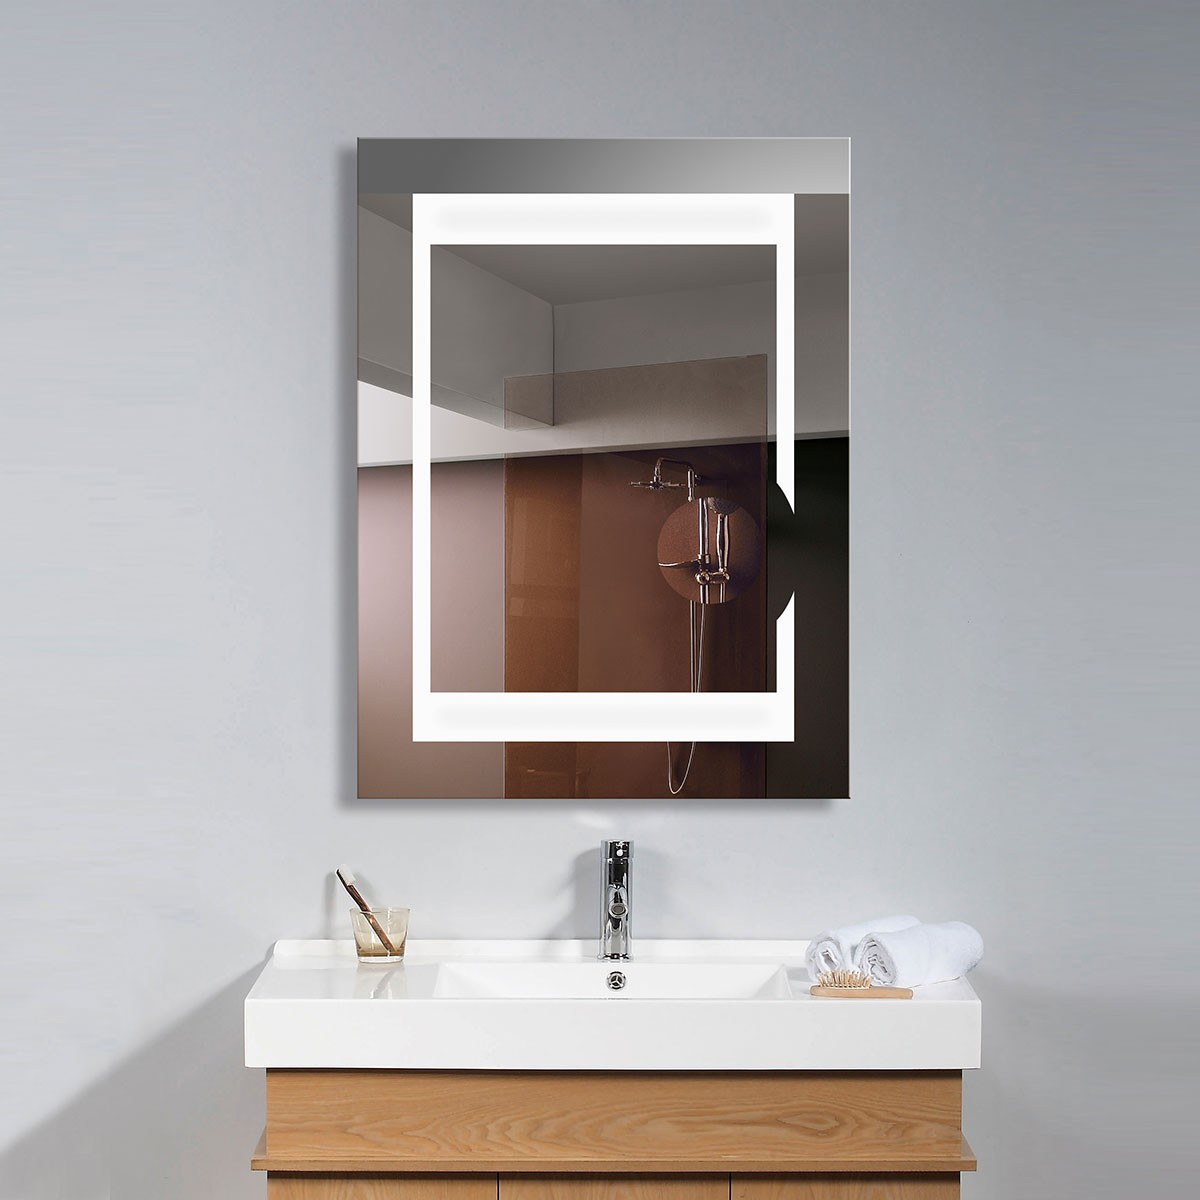 24 X 32 In Vertical Led Bathroom Mirror With Circular Magnifier And On Off Switch